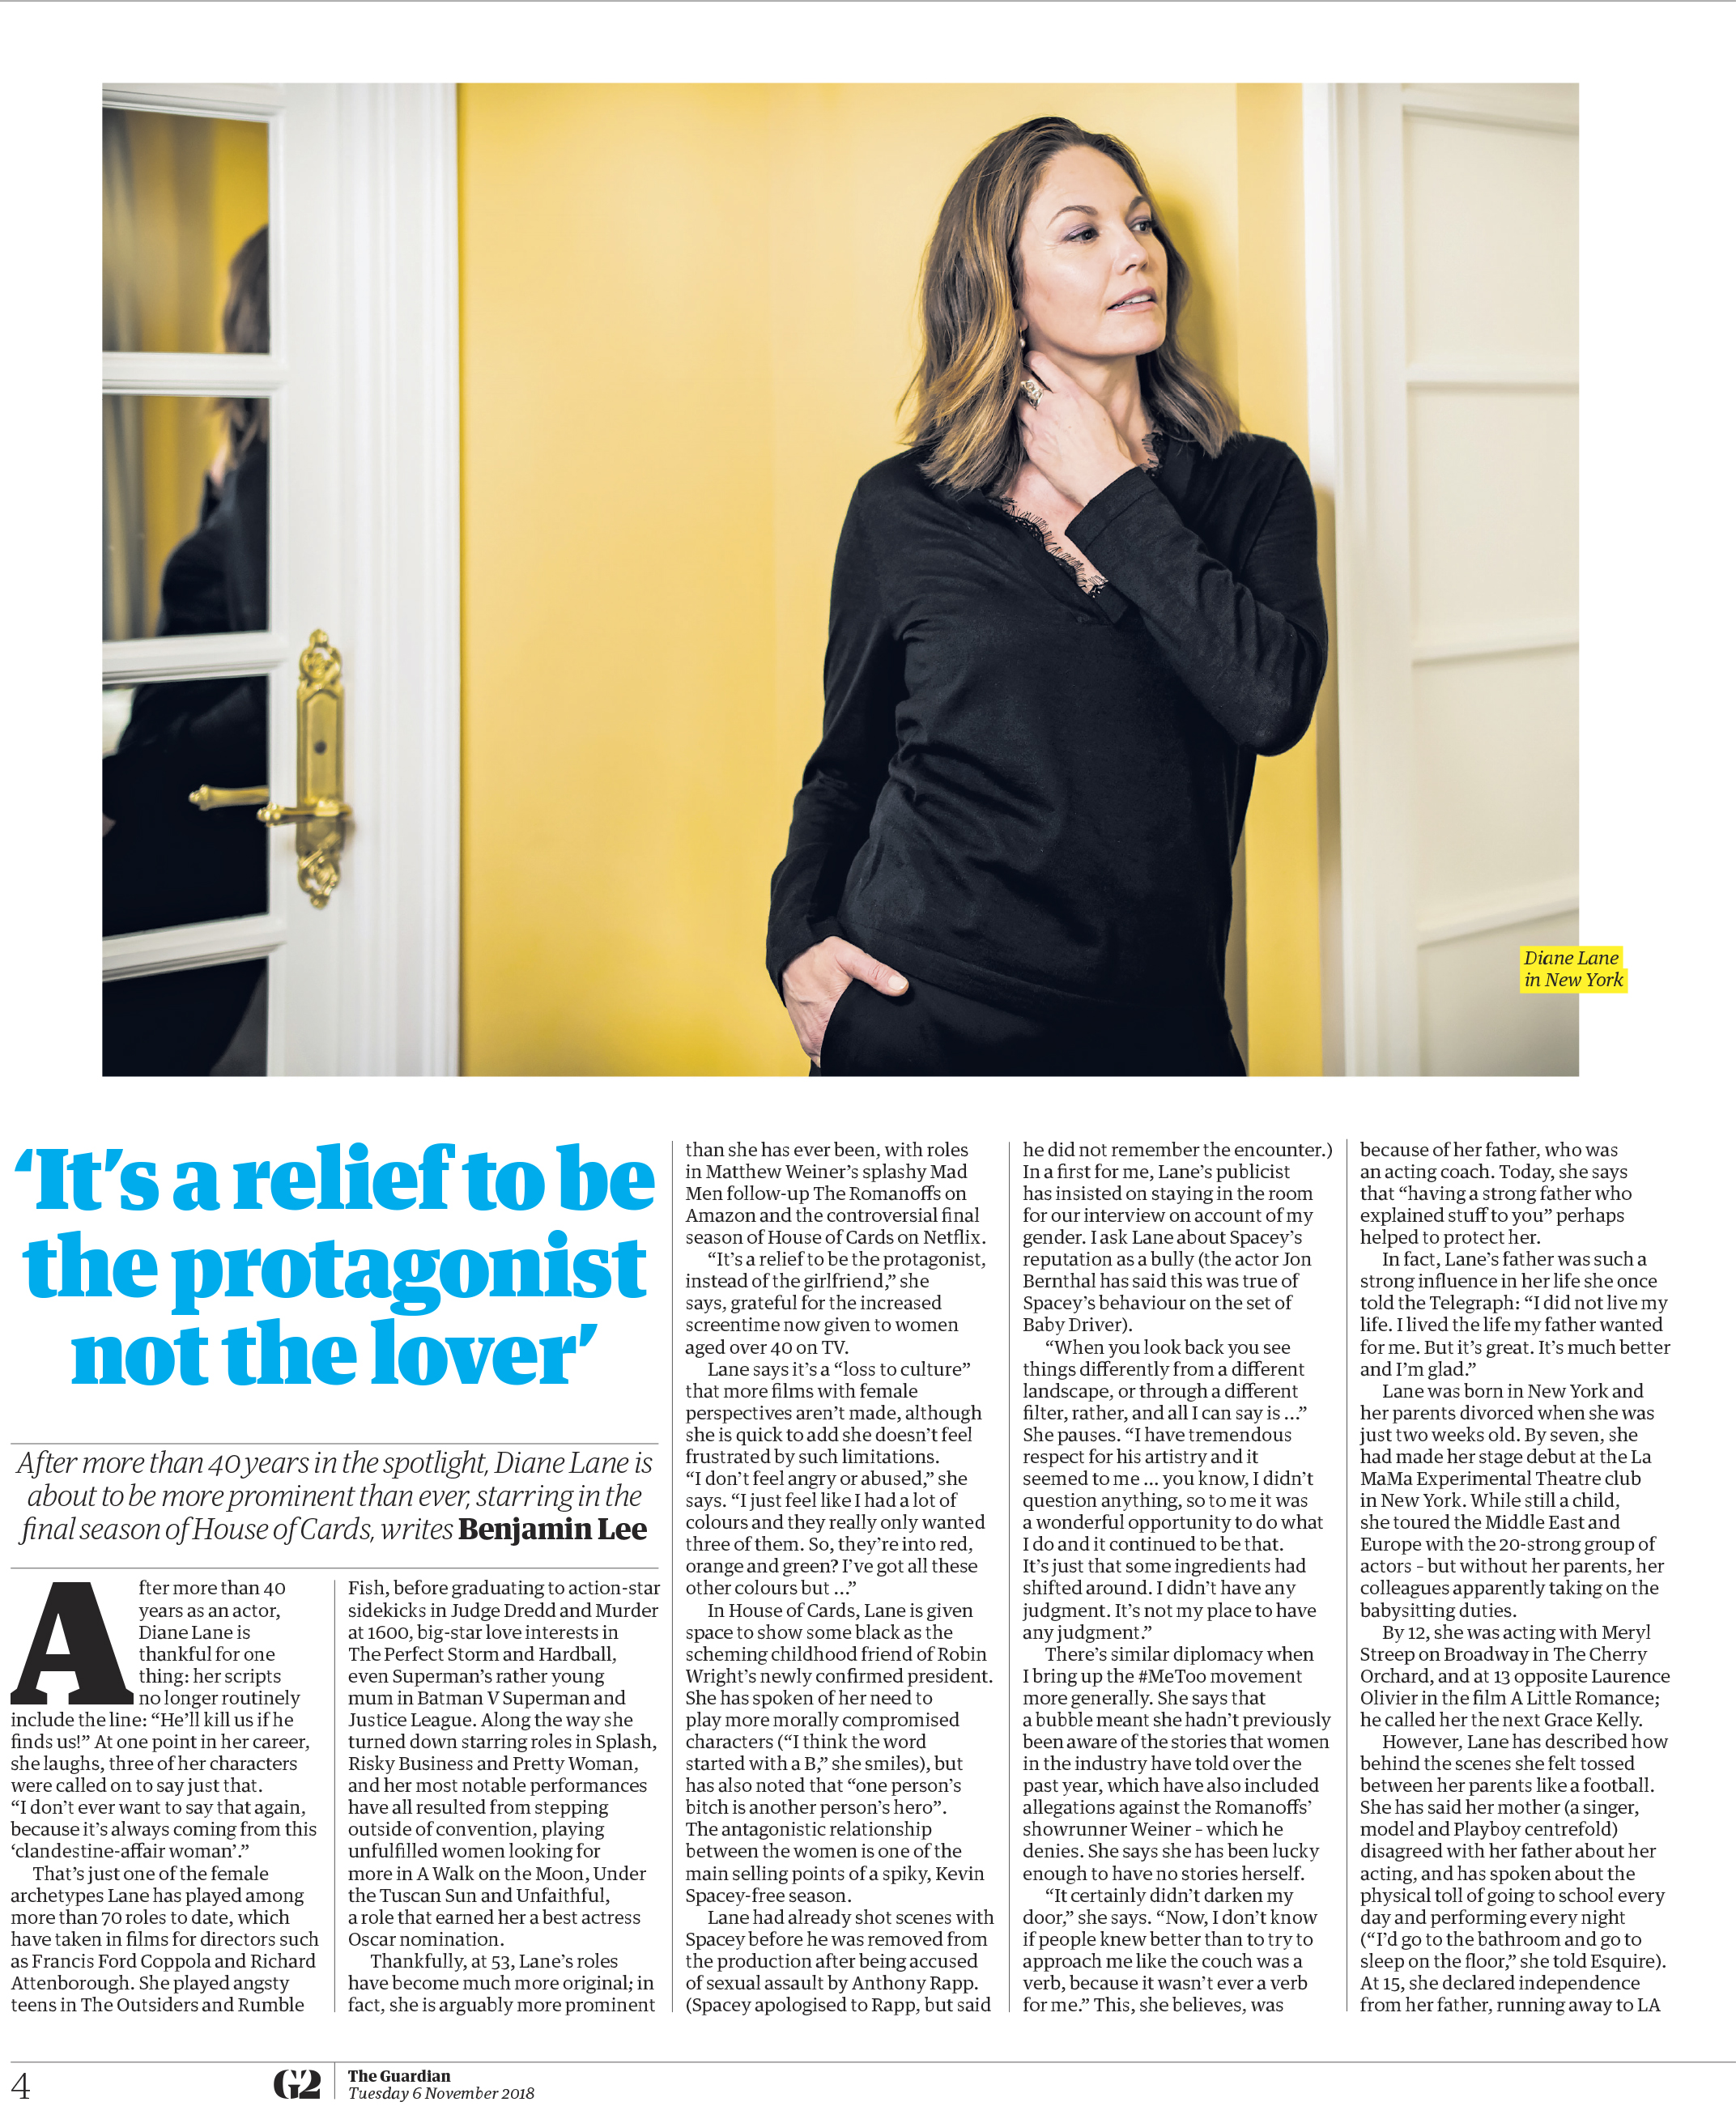 AliSmith_Guardian_DianeLane.jpg